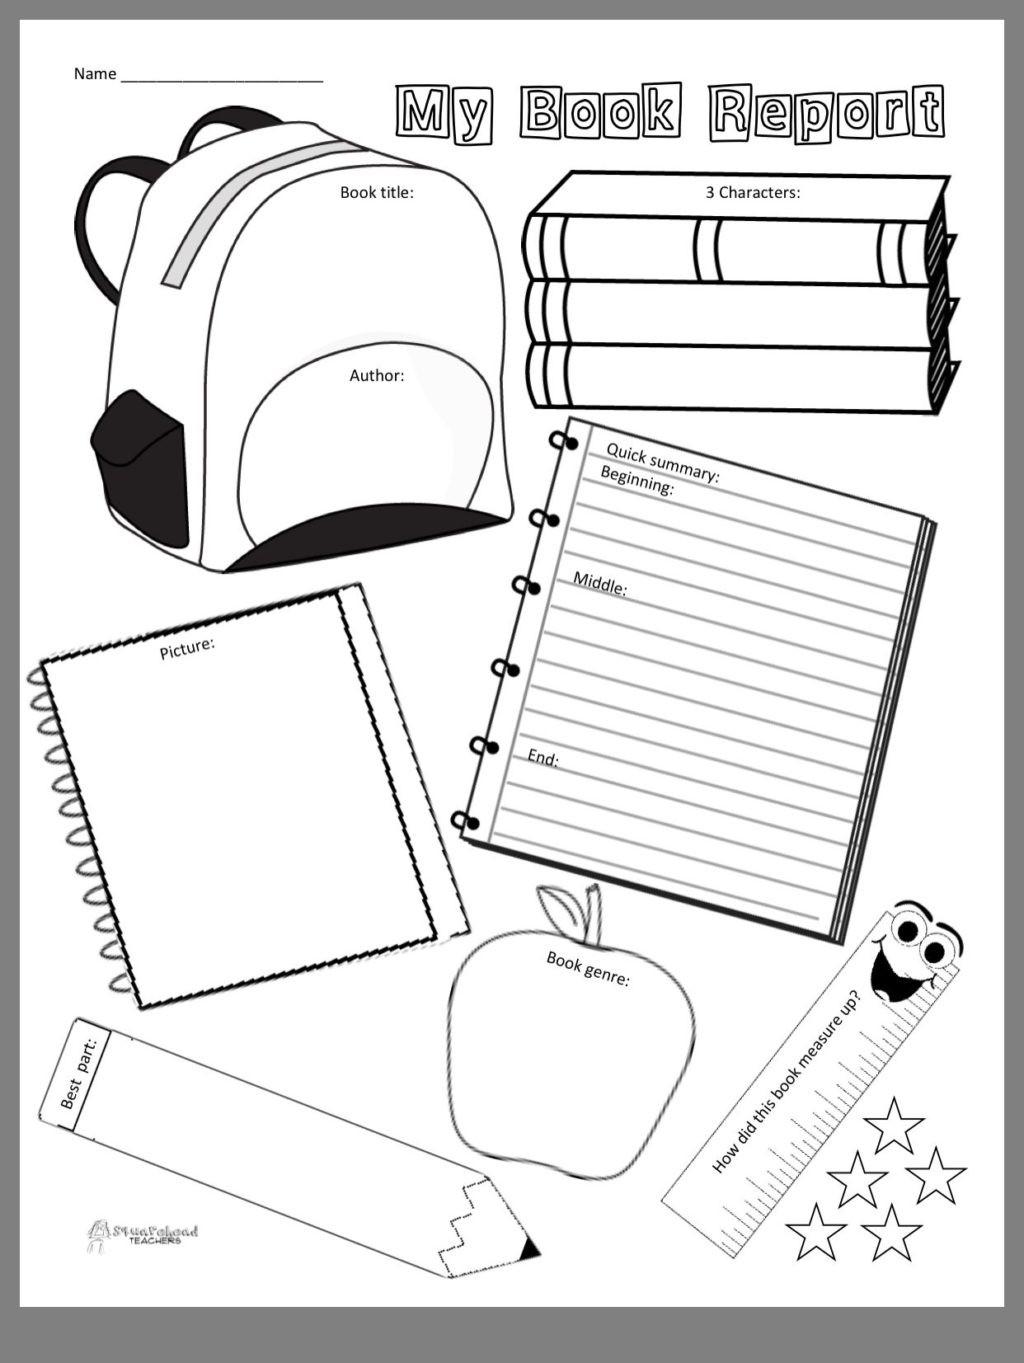 Genre Worksheets 4th Grade Worksheet Reading assignments for 5th Graders